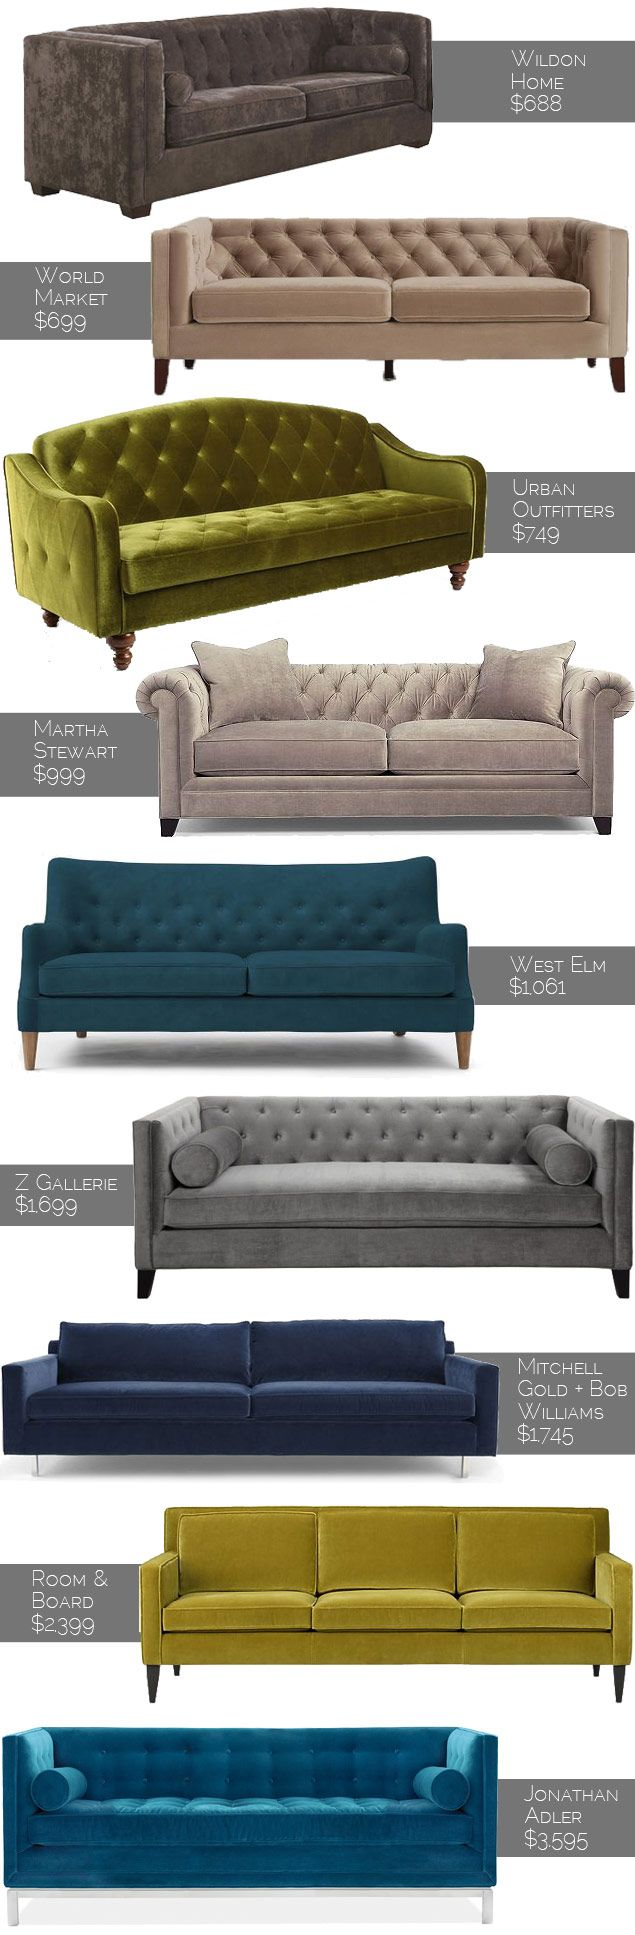 Get the Look: 10 Velvet Sofas for Any Budget (Photos) | Home Design & Shopping | Washingtonian